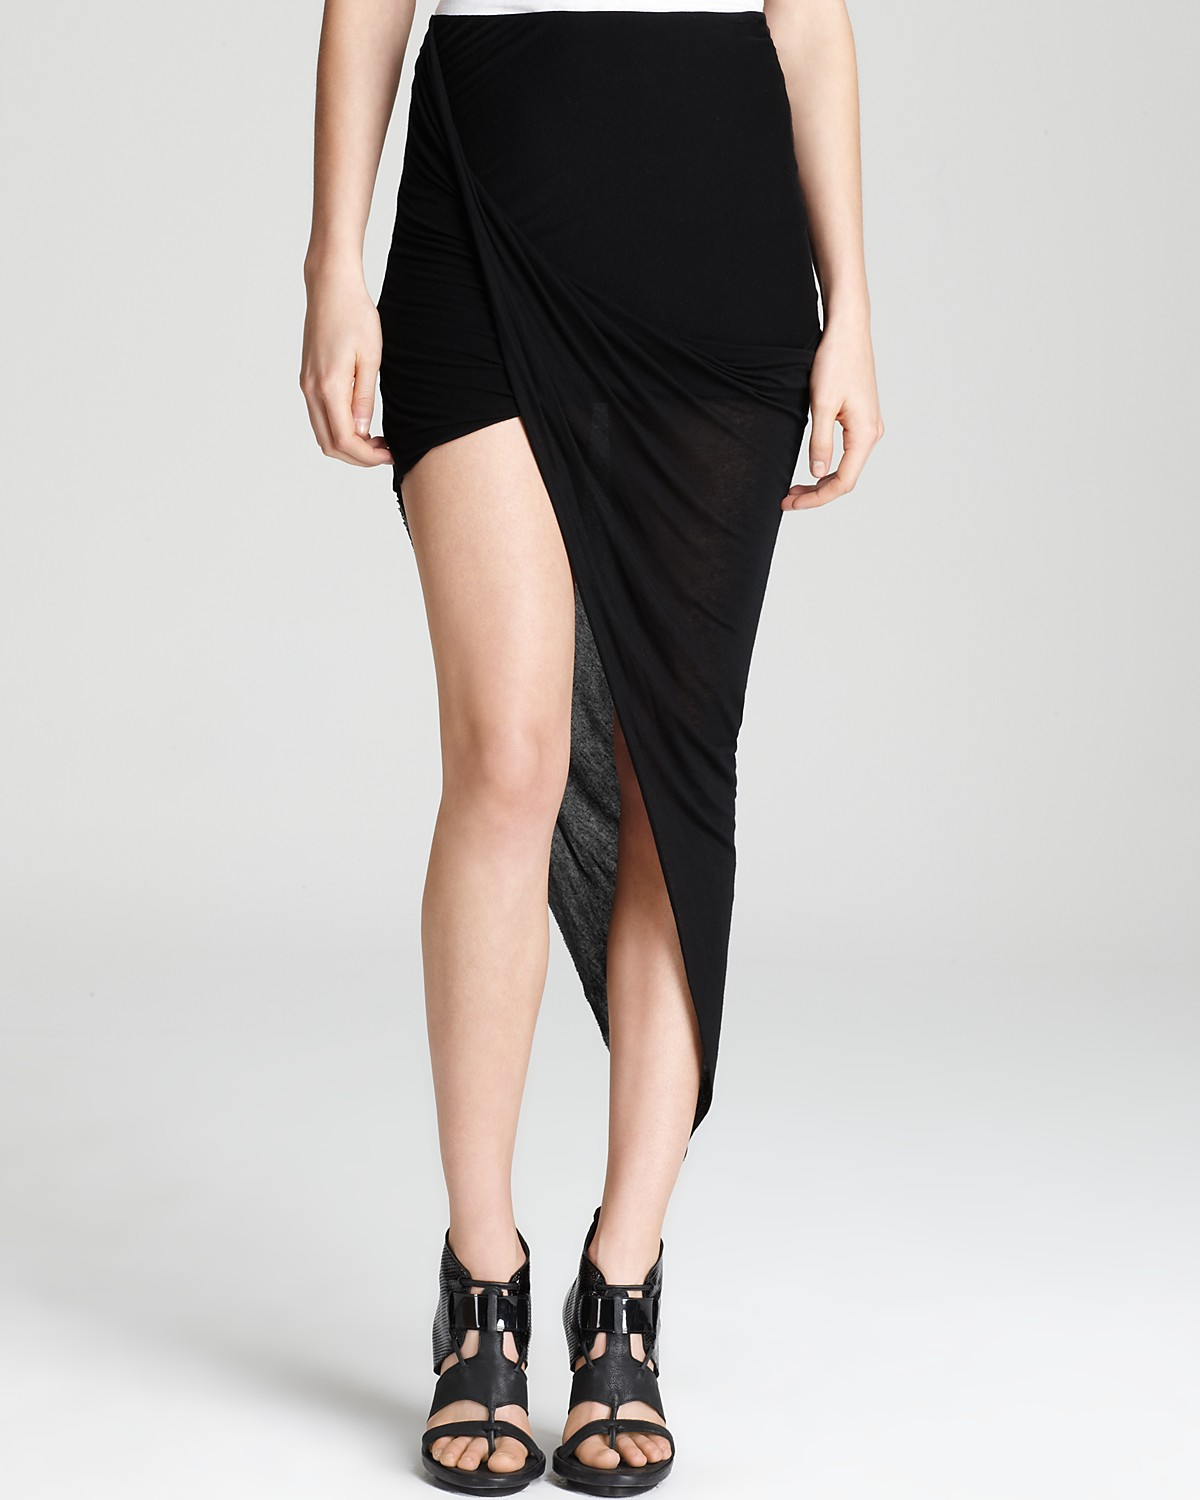 Womens Drape Up Asymmetrical Skirts Stretchy Bodycon Pencil Skirt. from $ 12 99 Prime. out of 5 stars 5. Killreal. Women's High Waist Victorian Steampunk Gothic Hi Low Skirt. from $ 9 99 Prime. 3 out of 5 stars RUIGO. Women's High-Waisted Boho Asymmetrical Hem Tie up Long Maxi Print Wrap Skirt.